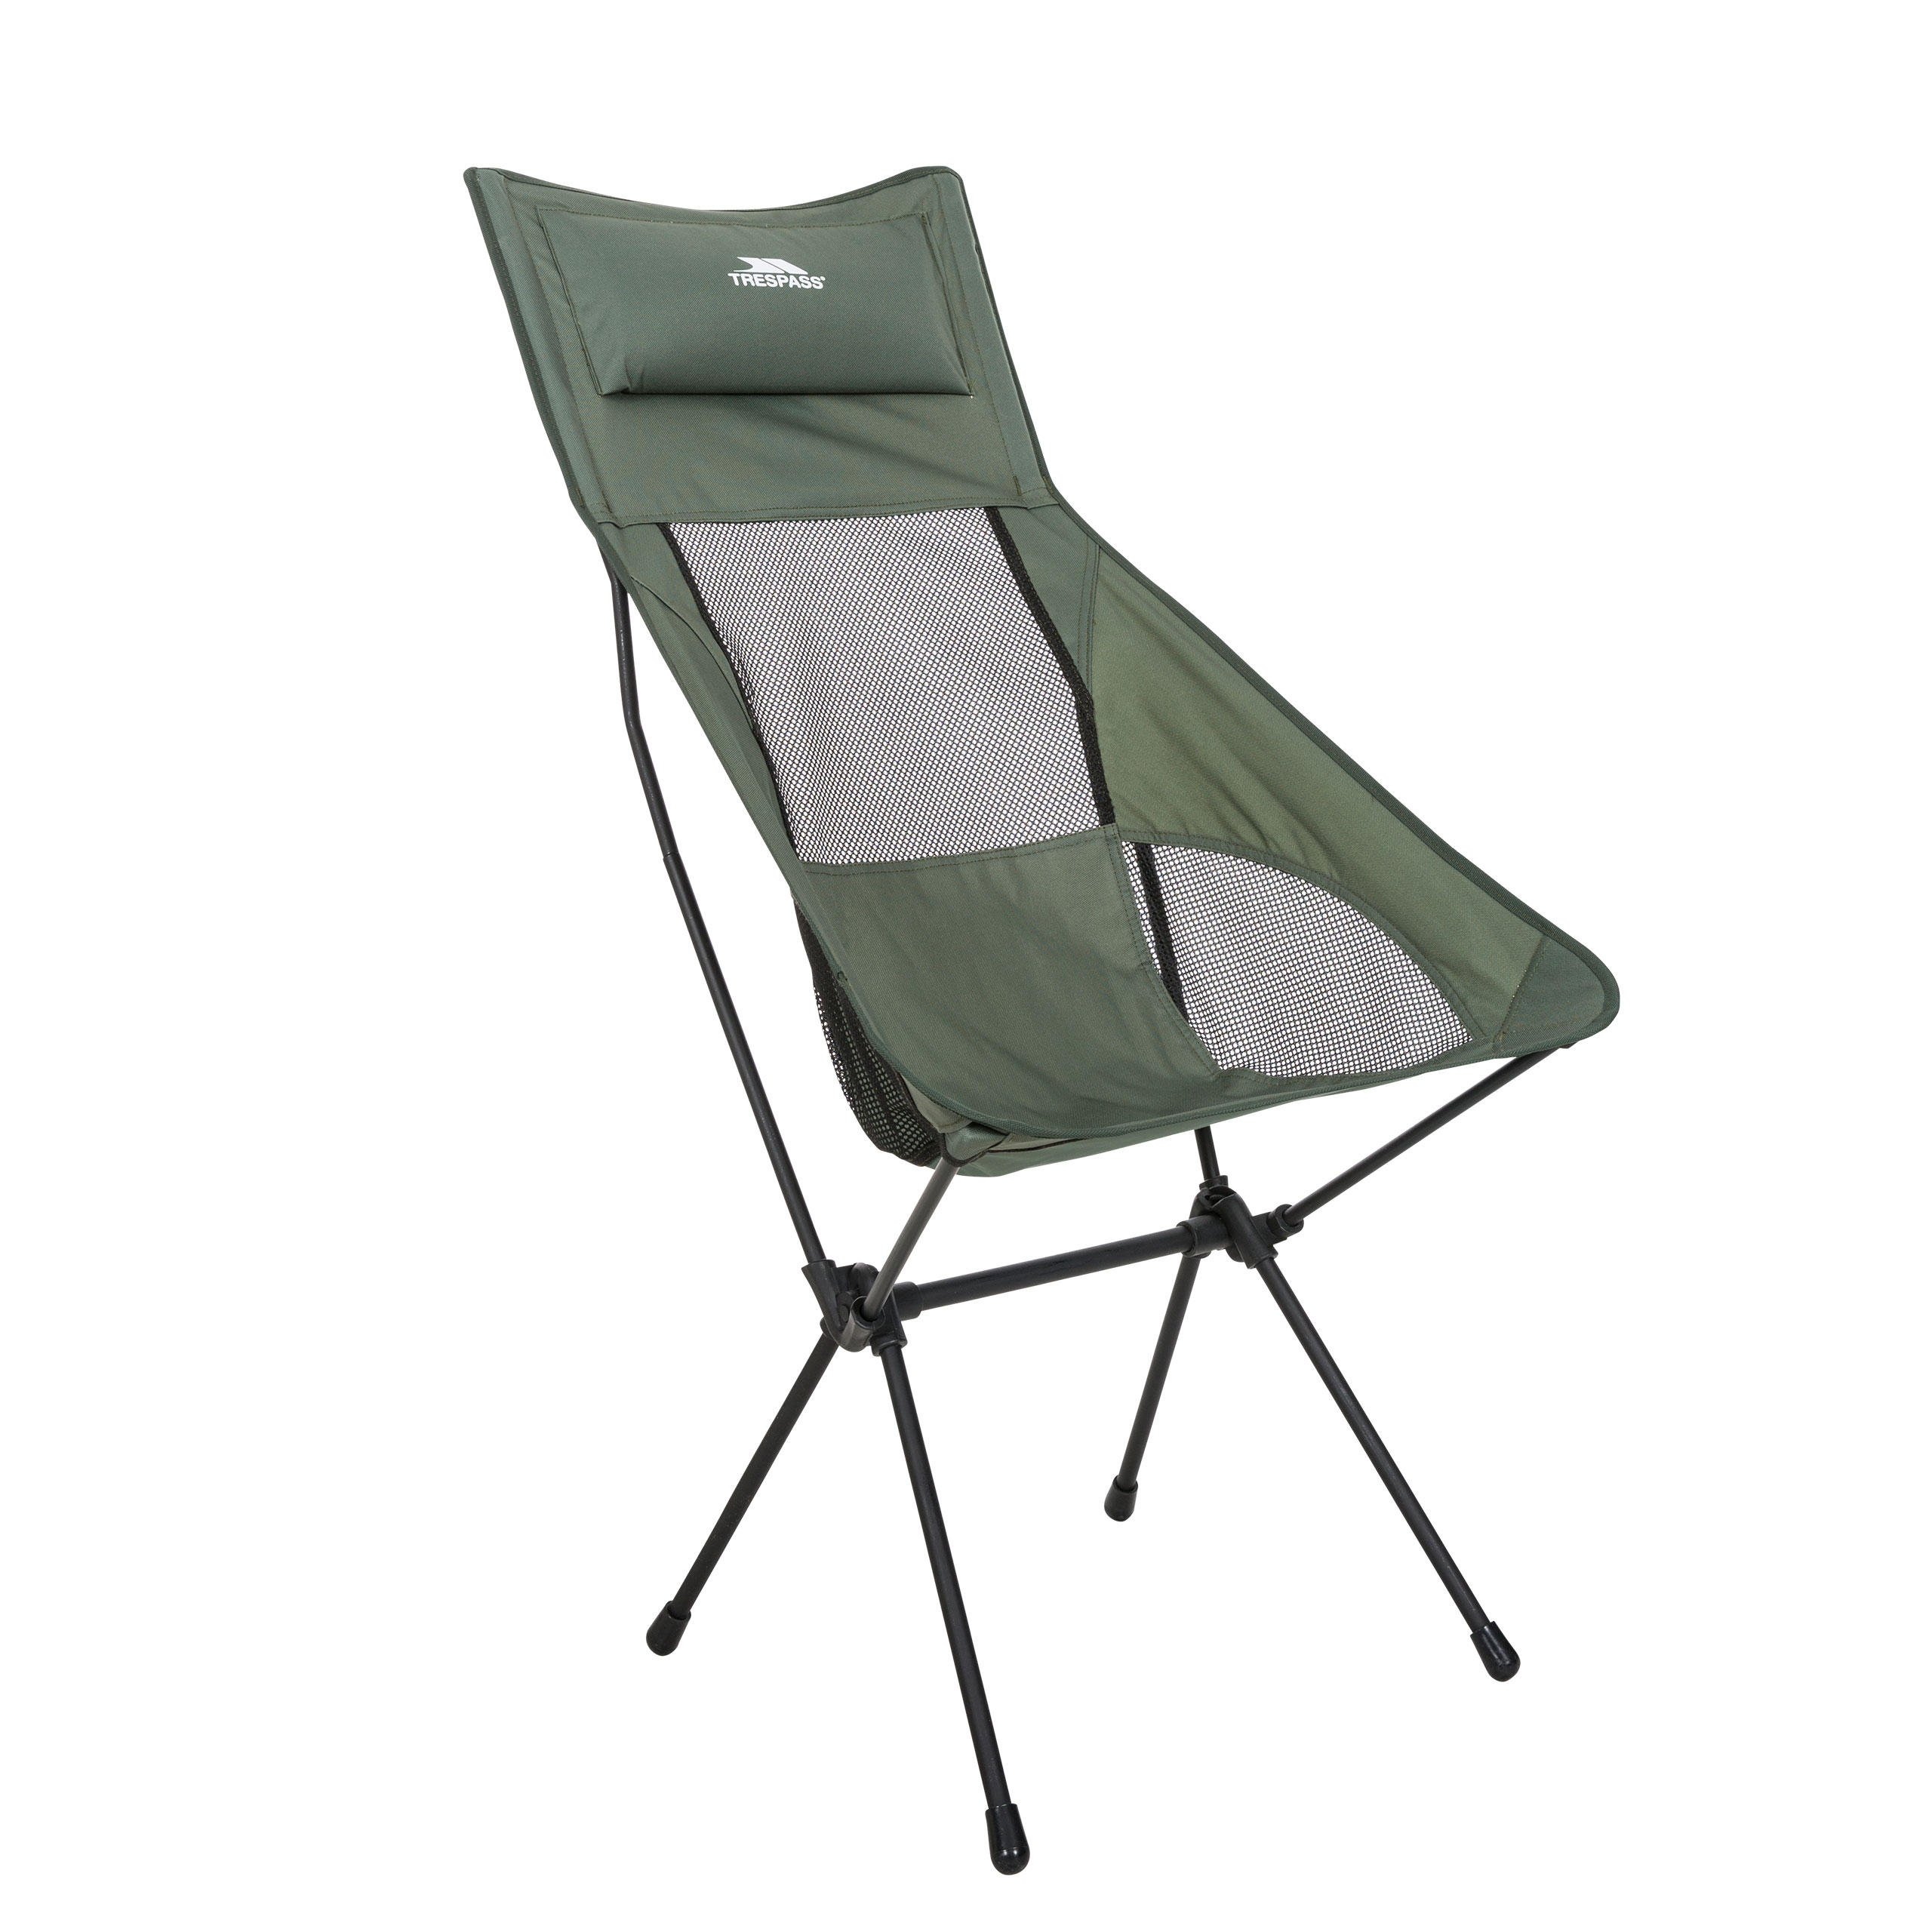 Trespass Folding Garden /& Camping Table 60x45cm